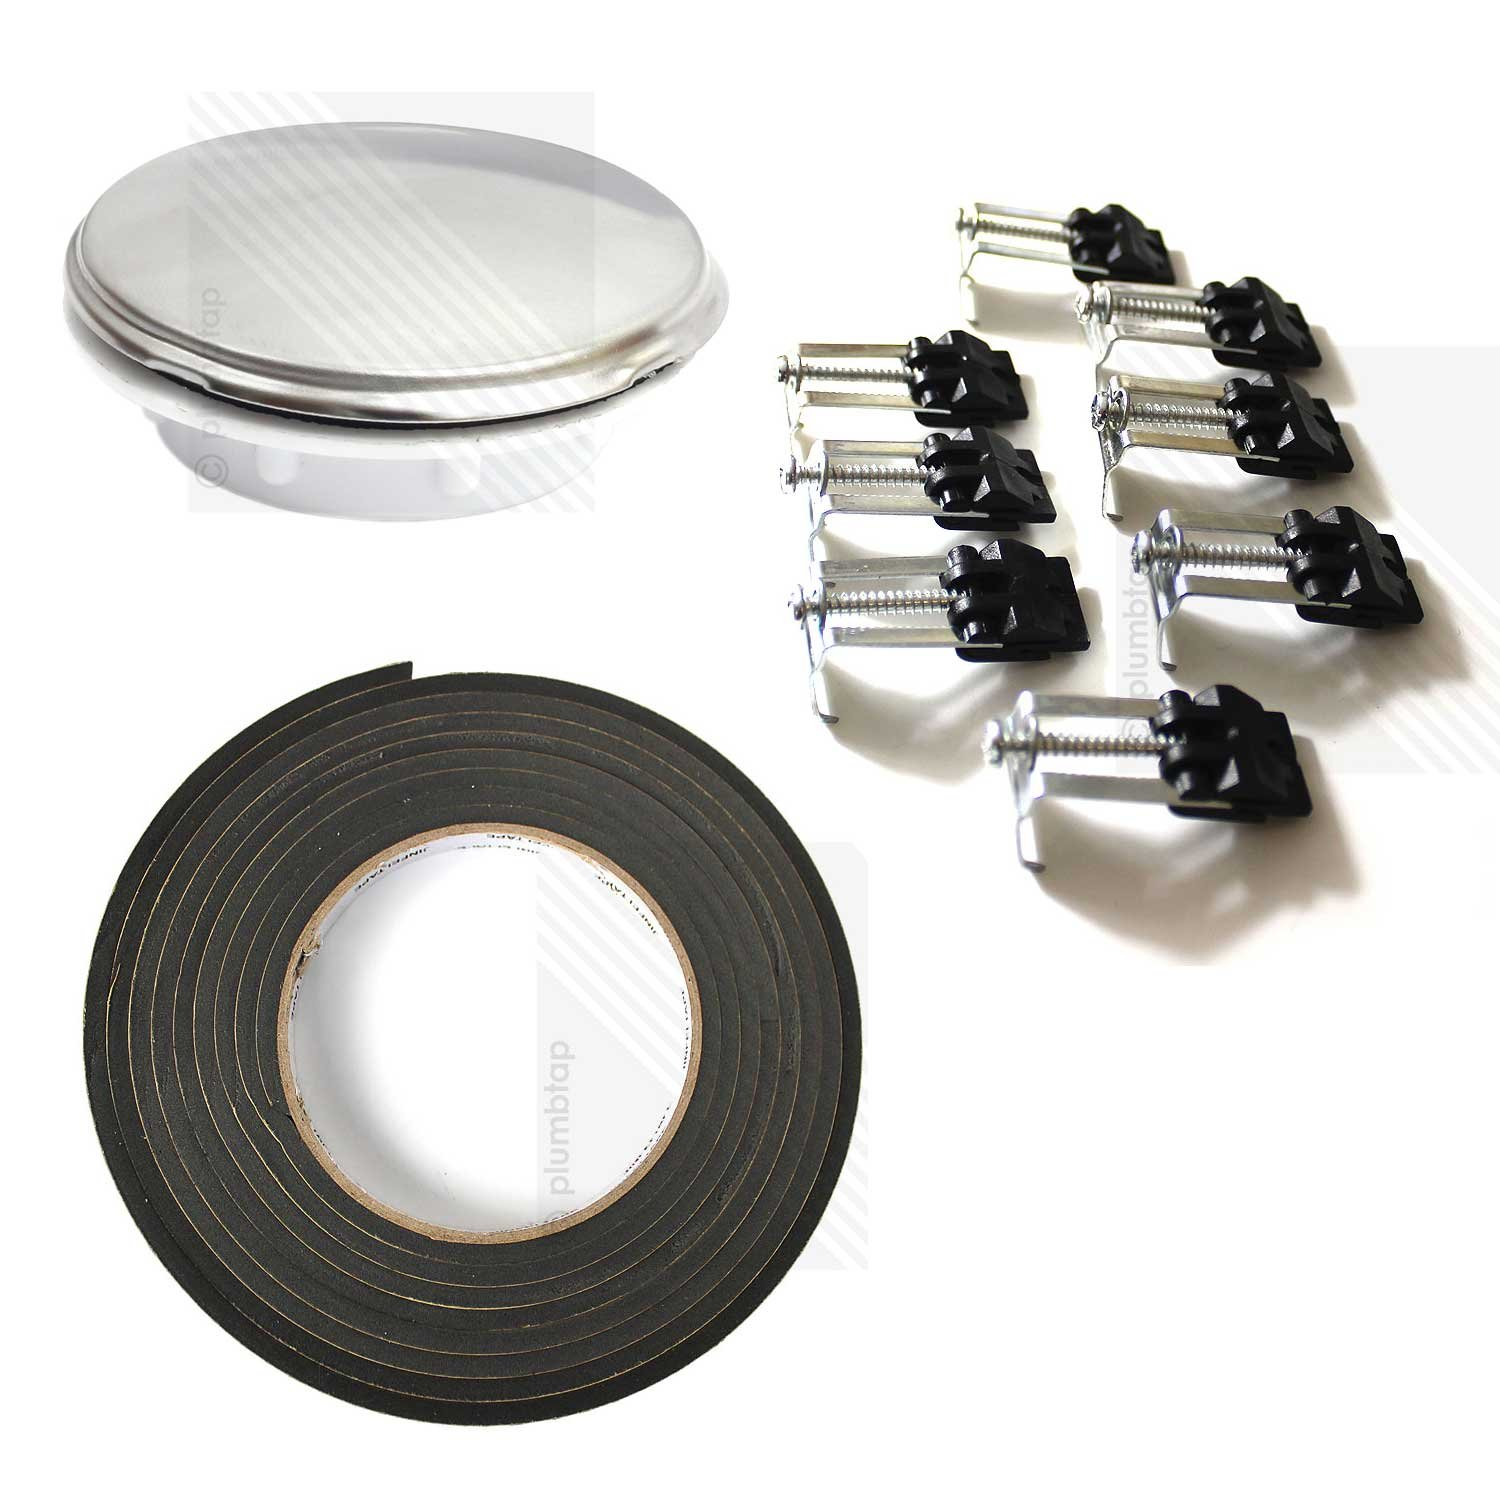 KITCHEN SINK FIXING KIT: 8 x Stainless Steel Clips, 3 Metres of Foam ...